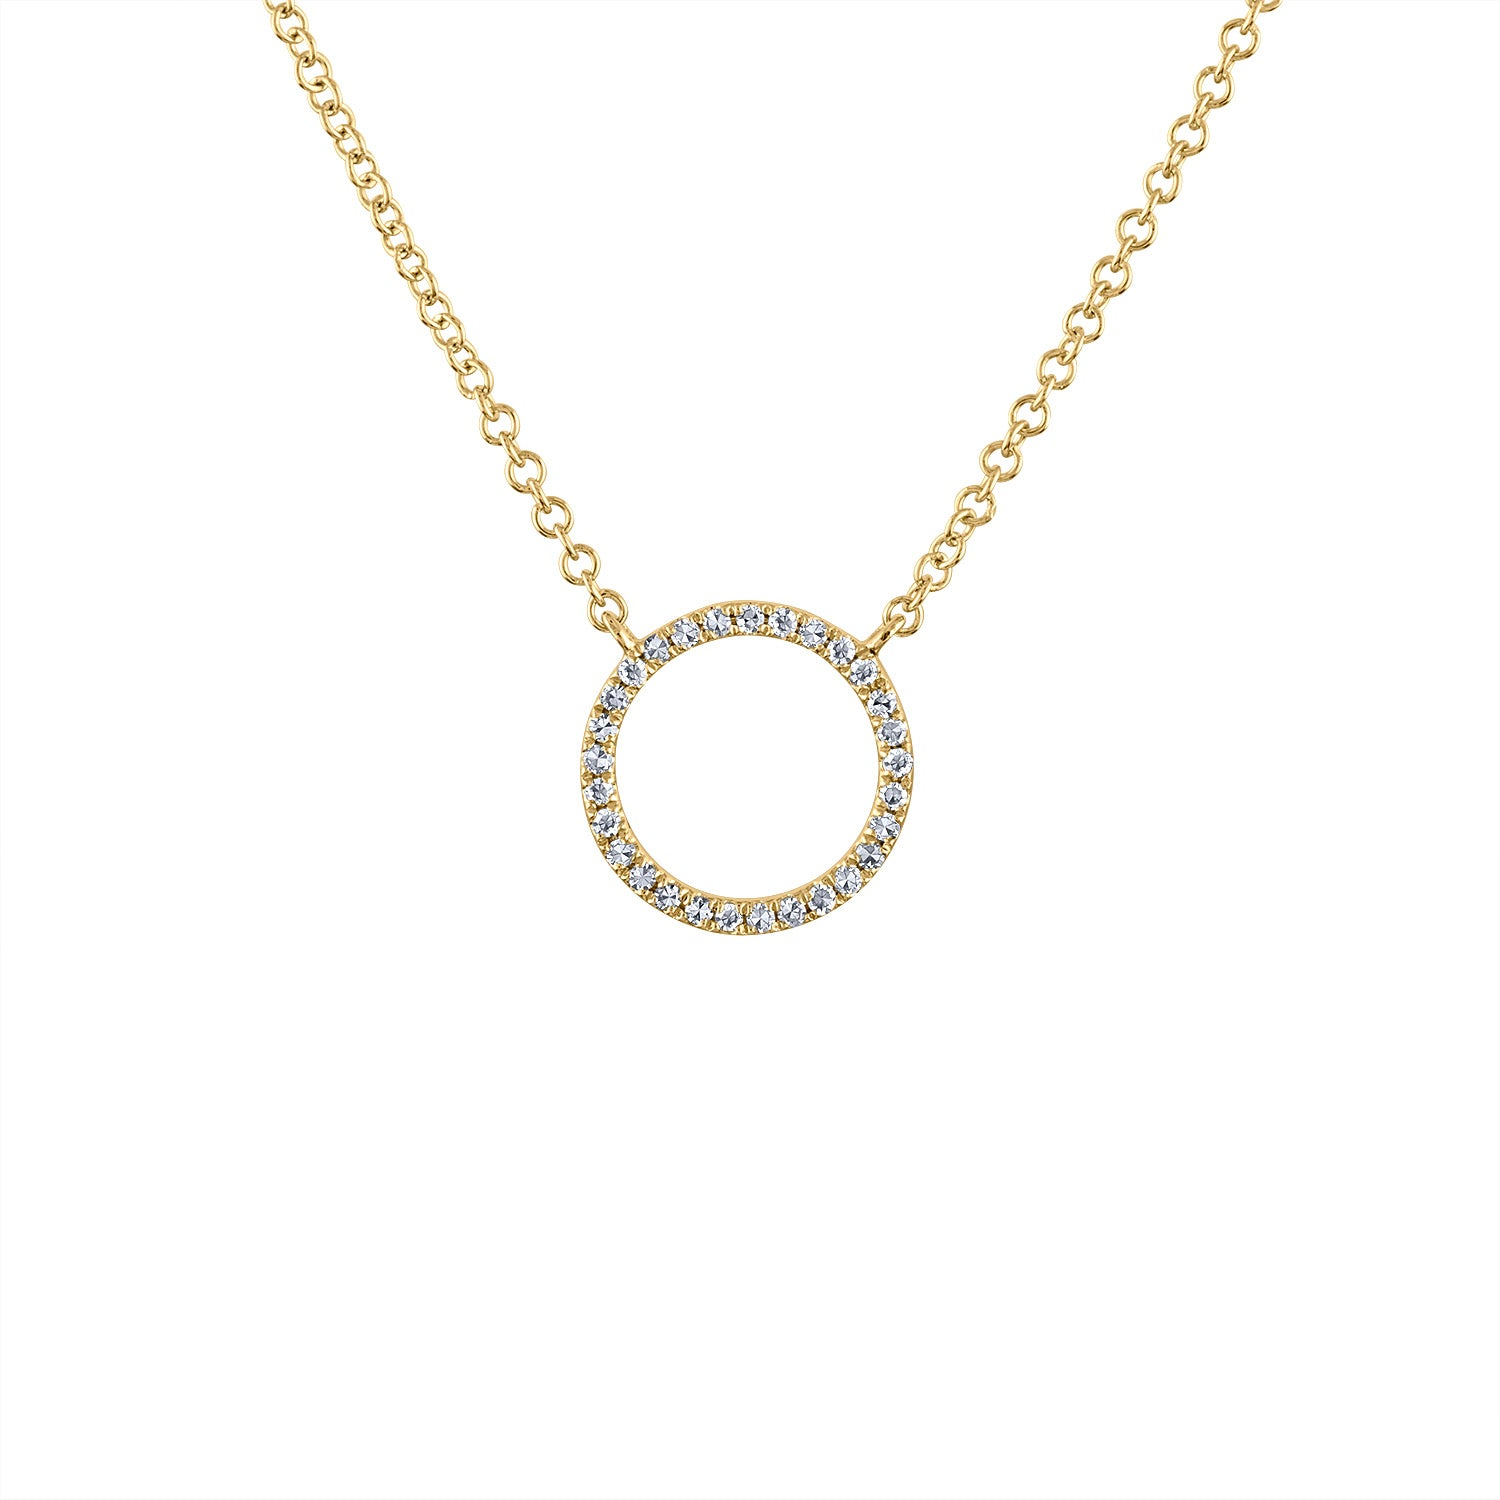 14KT GOLD STATIONERY SMALL DIAMOND OPEN CIRCLE NECKLACE